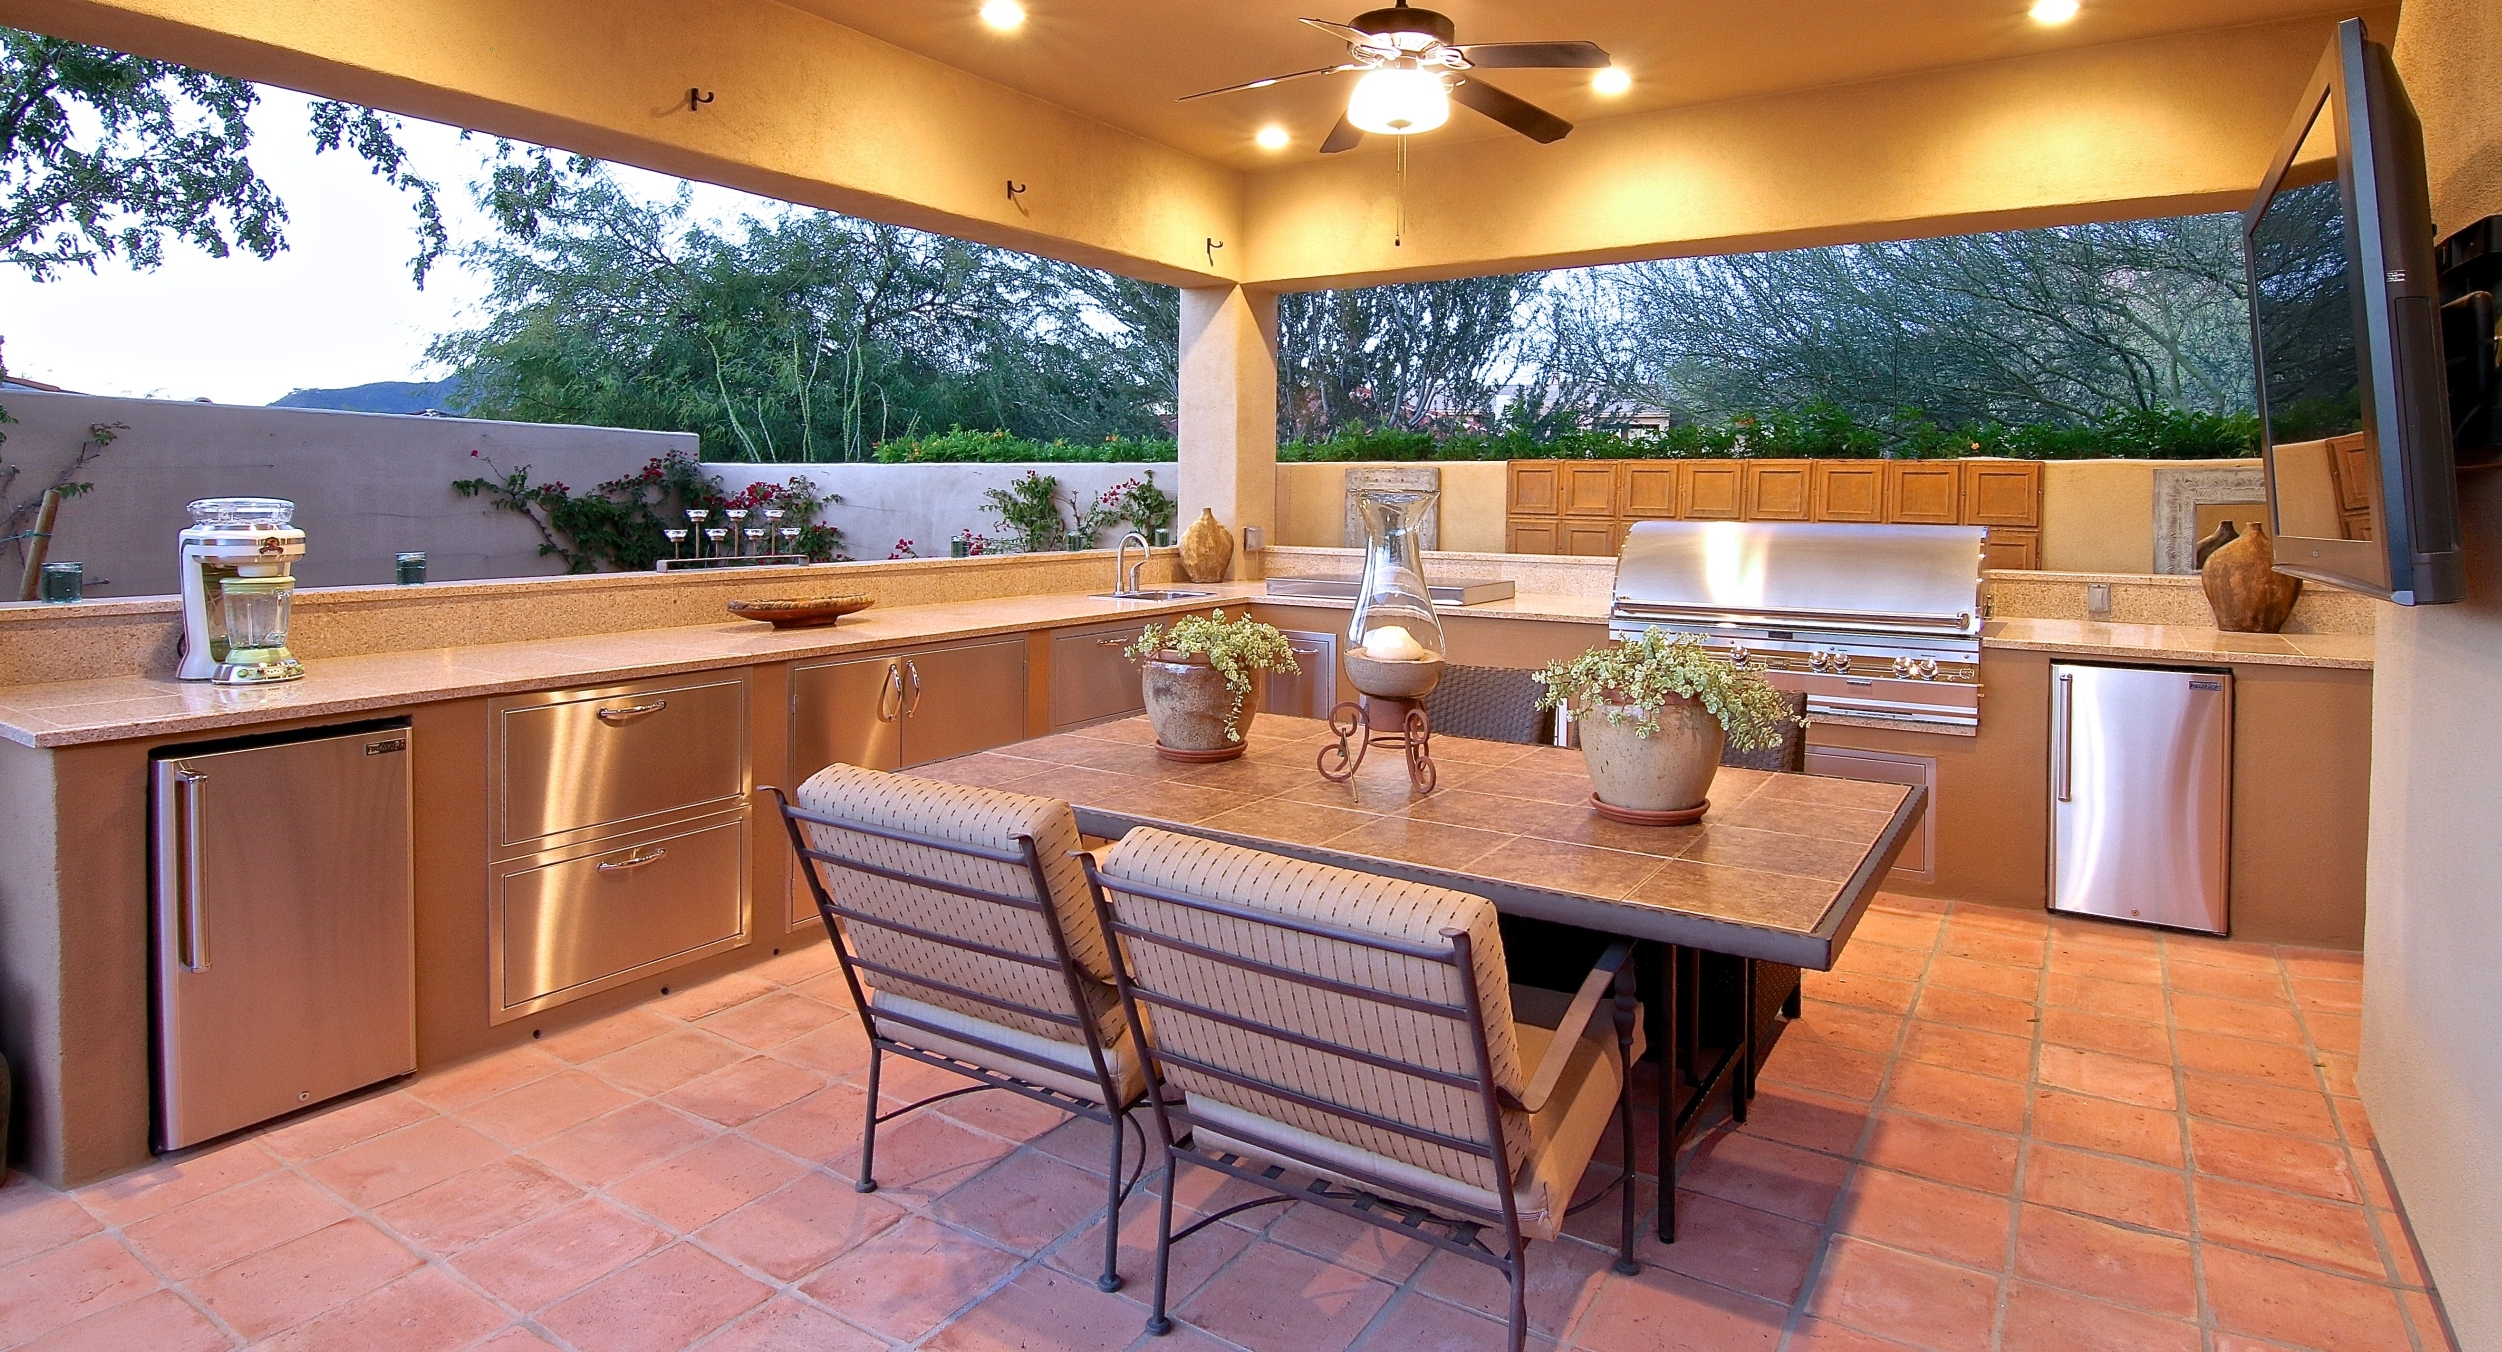 You can have it all, including the kitchen sink in Desert Crest outdoor kitchens, Phoenix and Scottsdale homeowners. The only thing missing in the one pictured here is a wood-fired oven.